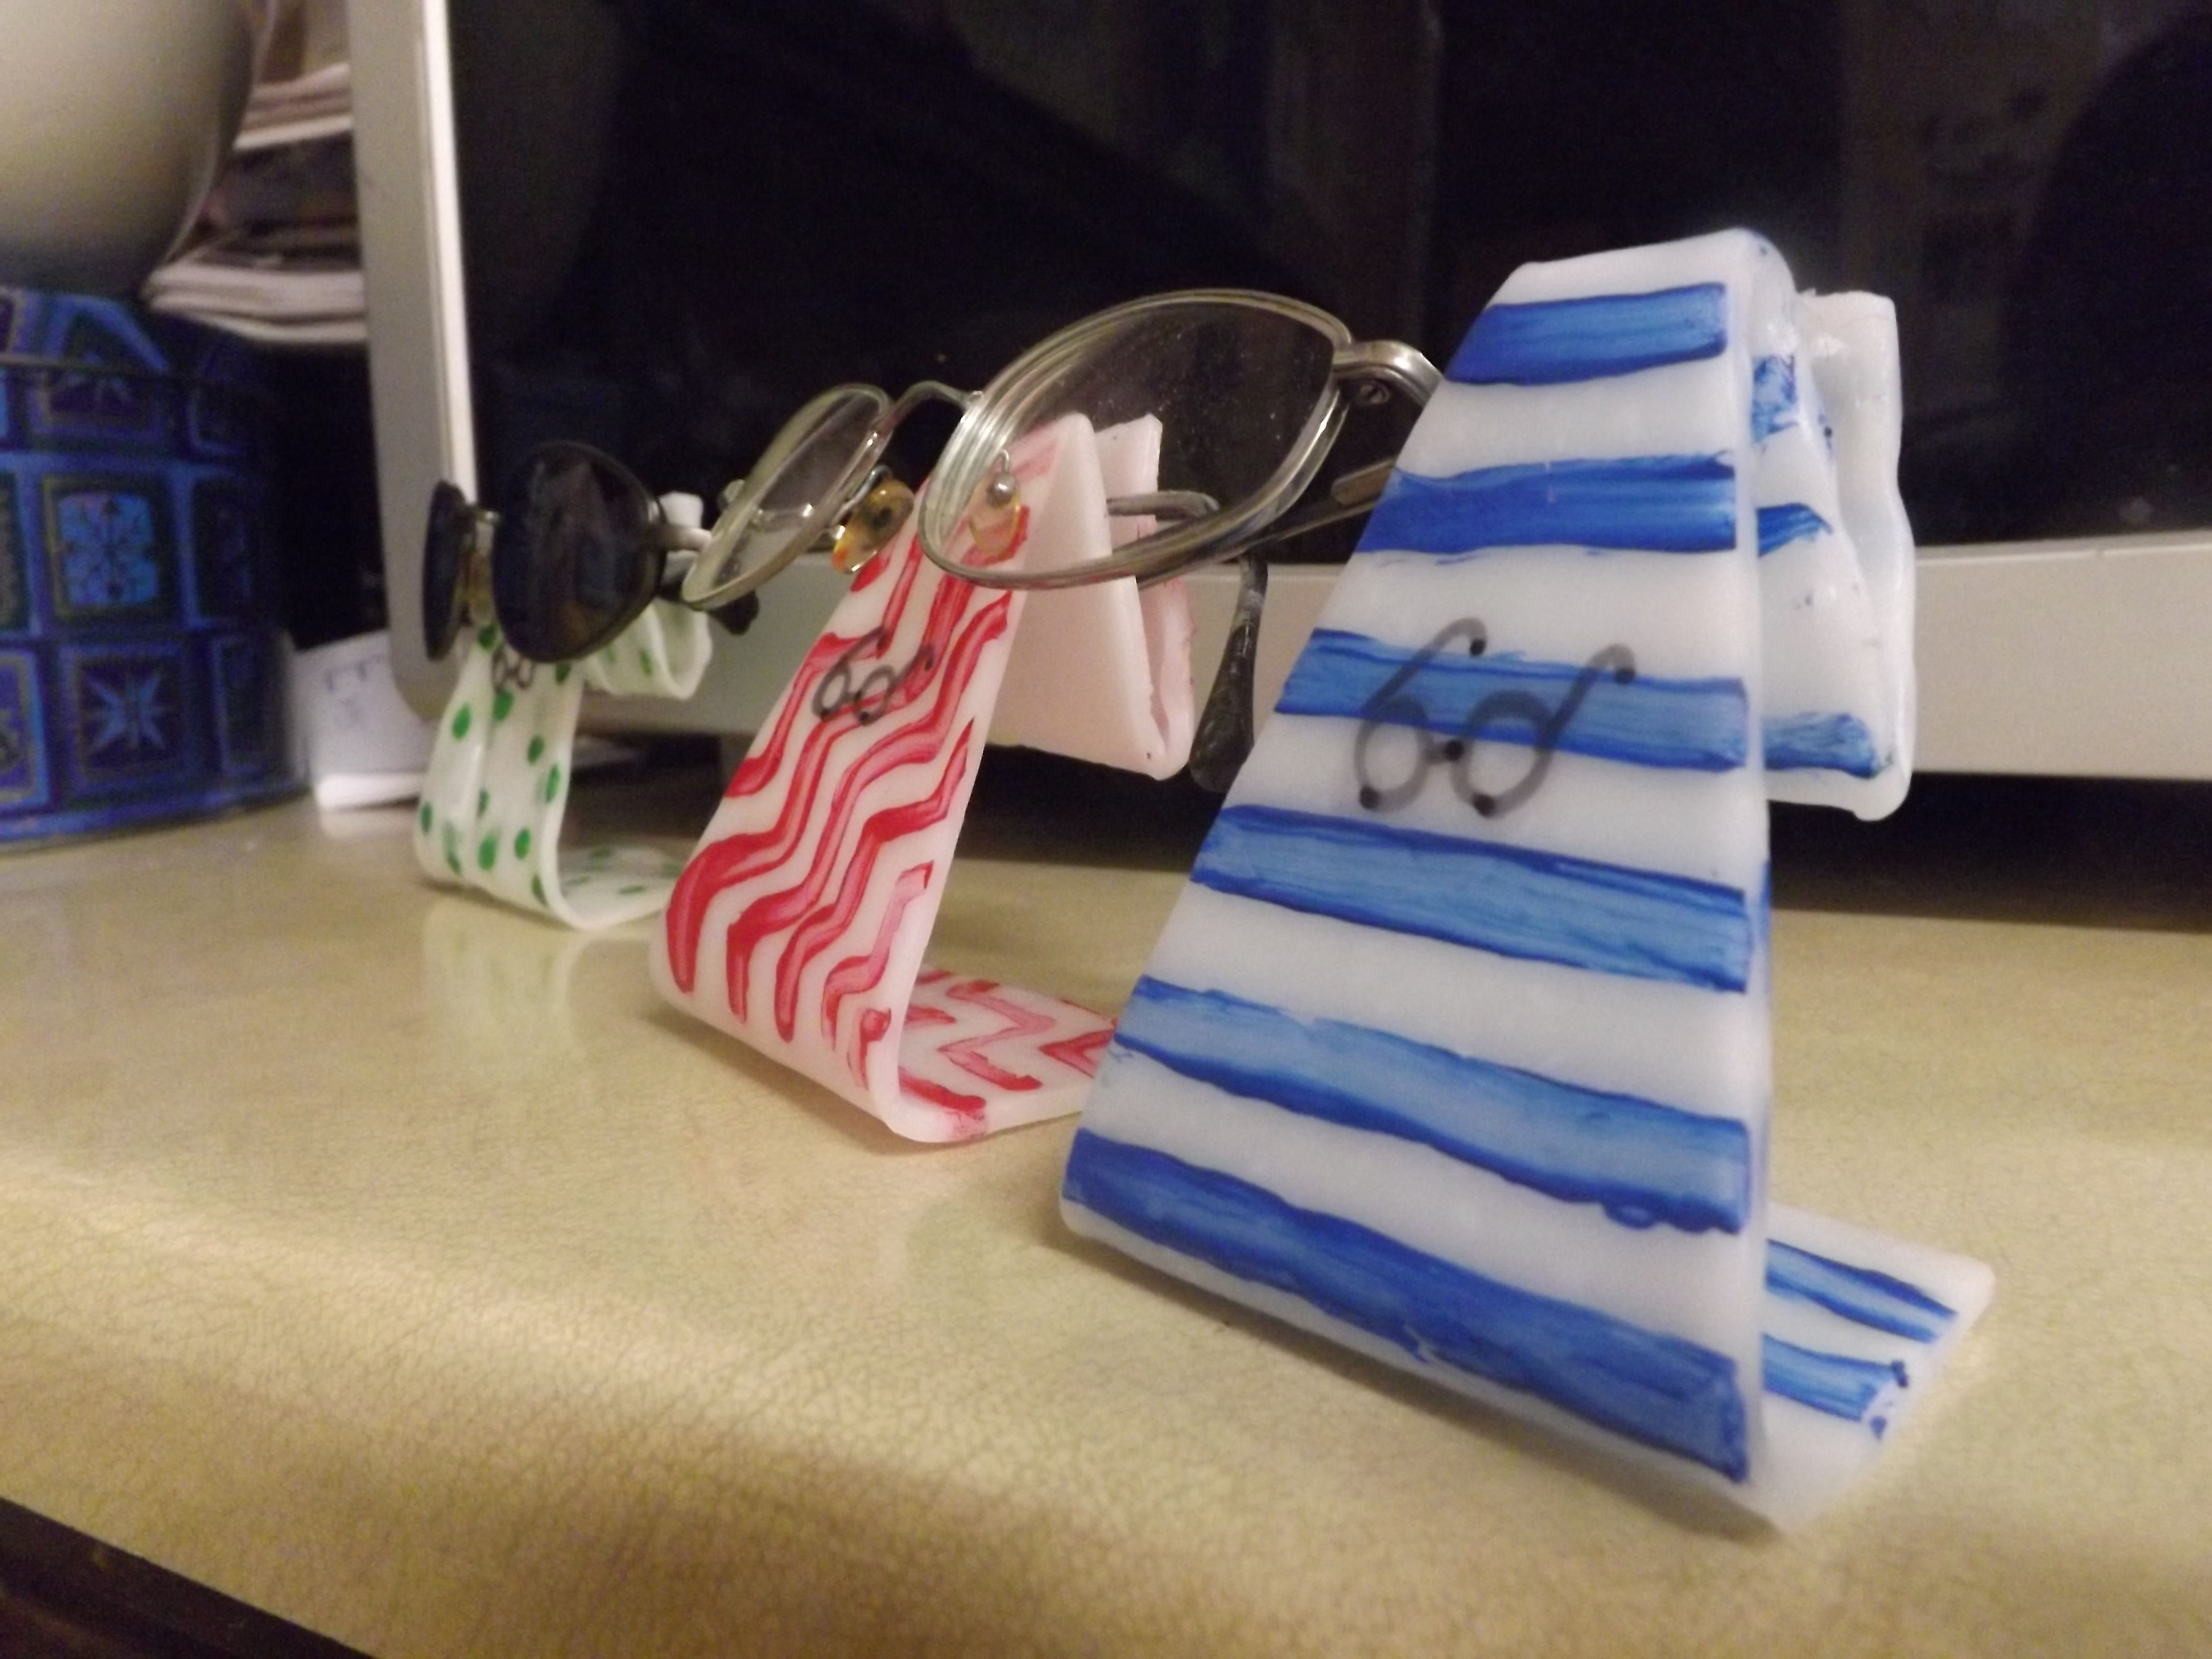 c09449cf39a Make your own colorful eye glasses holder from InstaMorph moldable plastic.